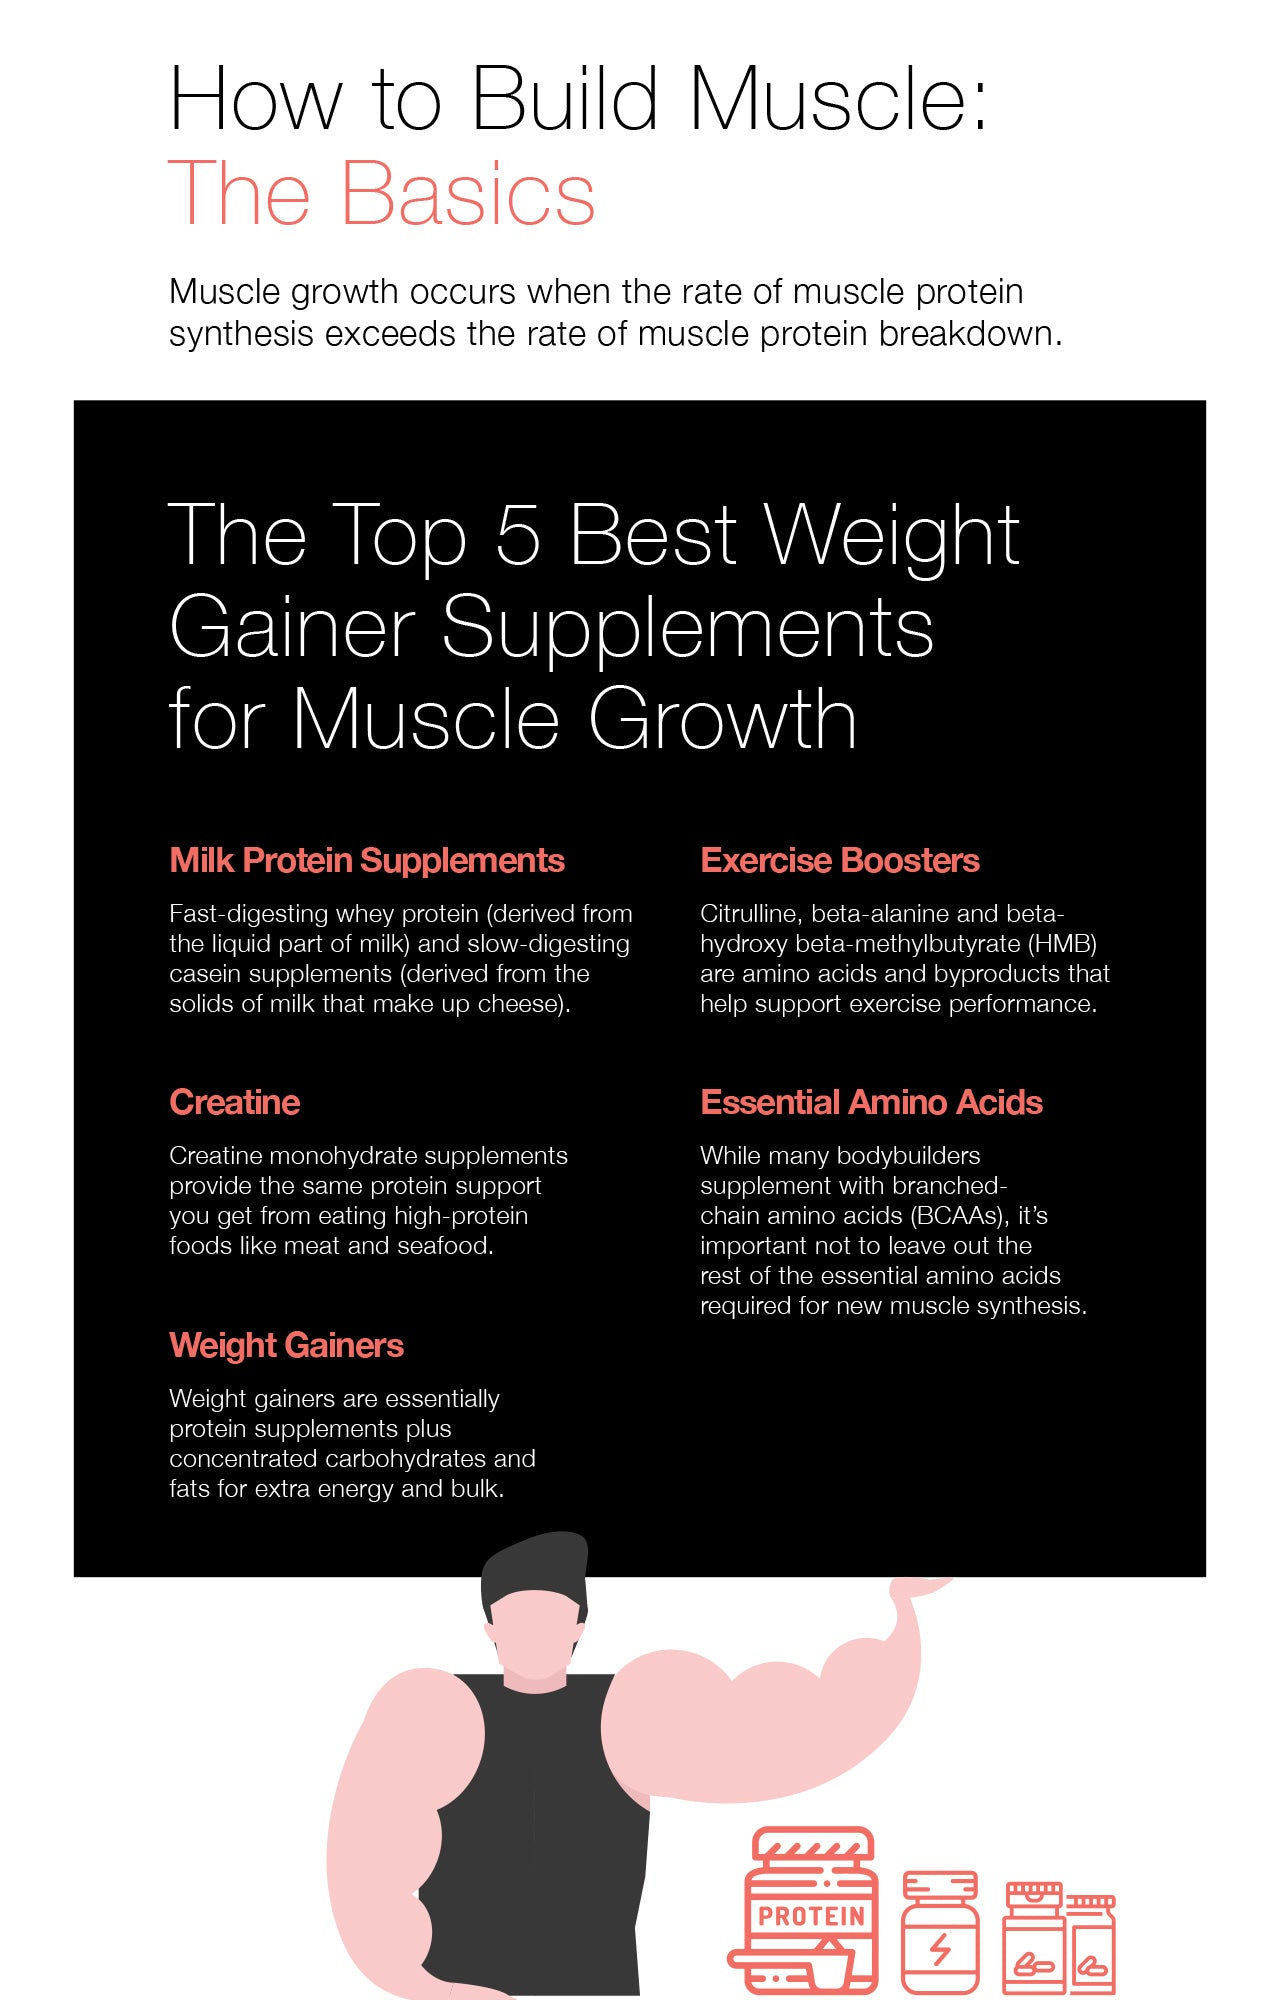 The Top 5 Best Weight Gainer Supplements for Muscle Growth